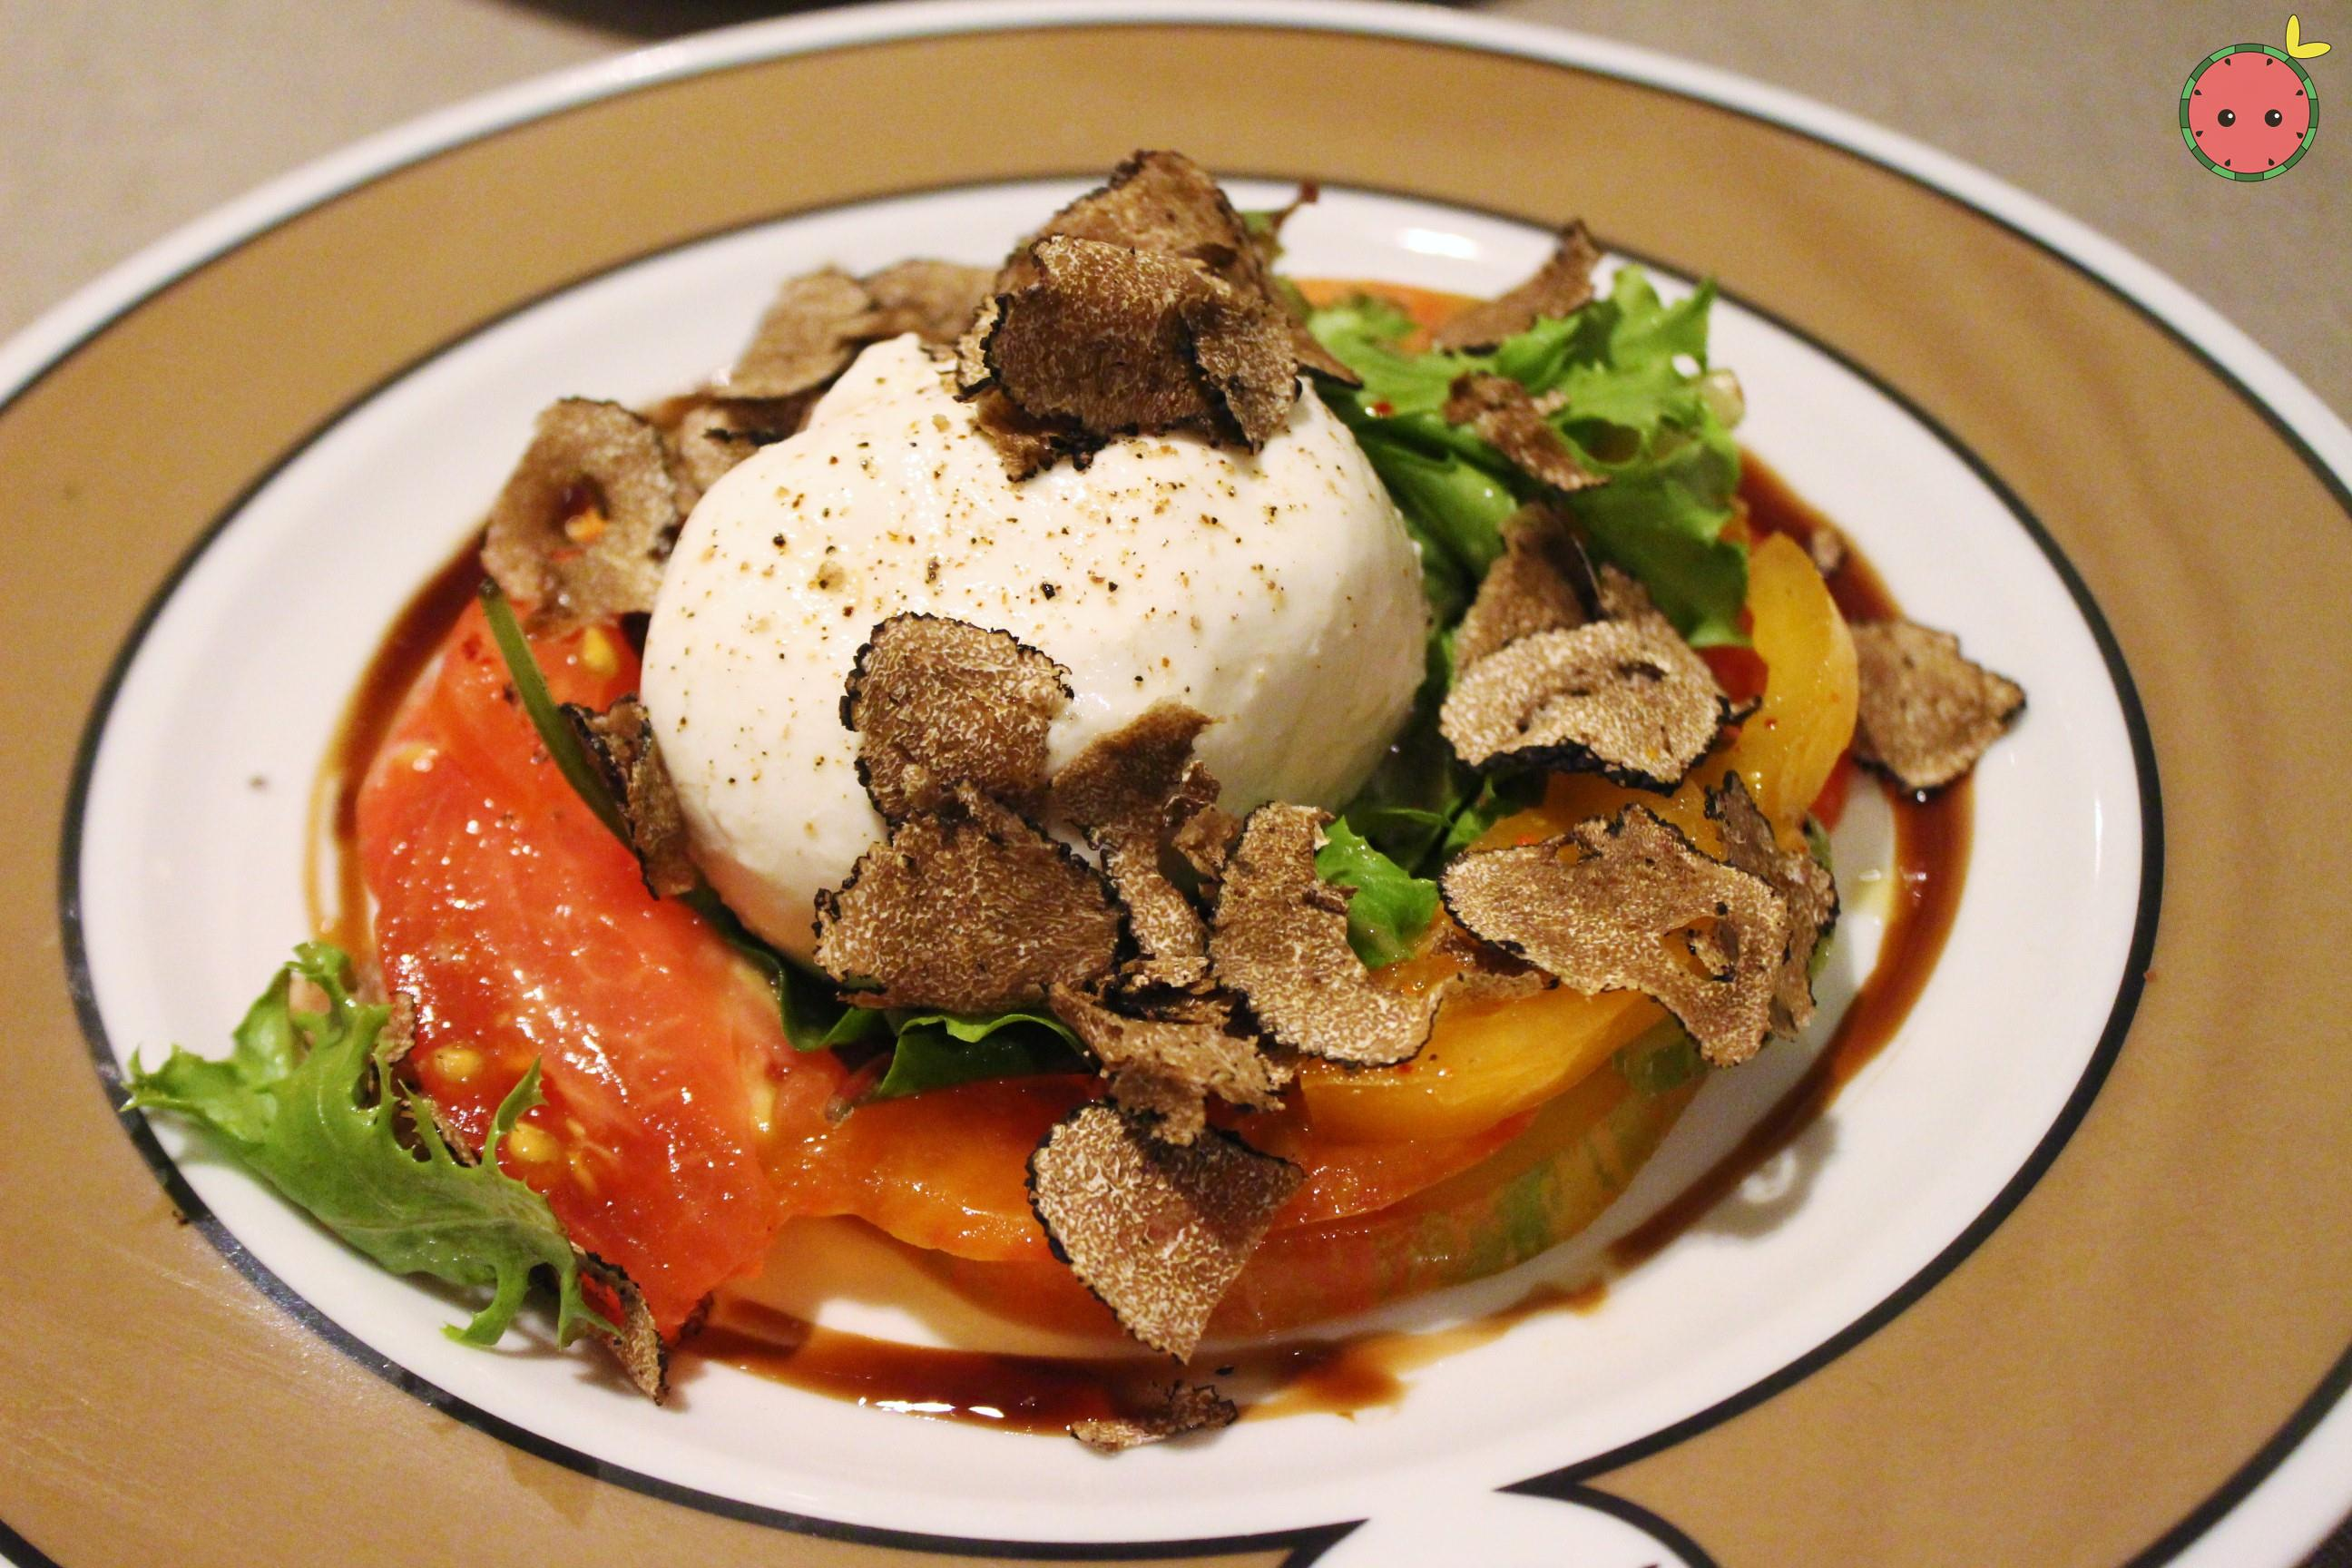 Burrata with tomatoes and truffle